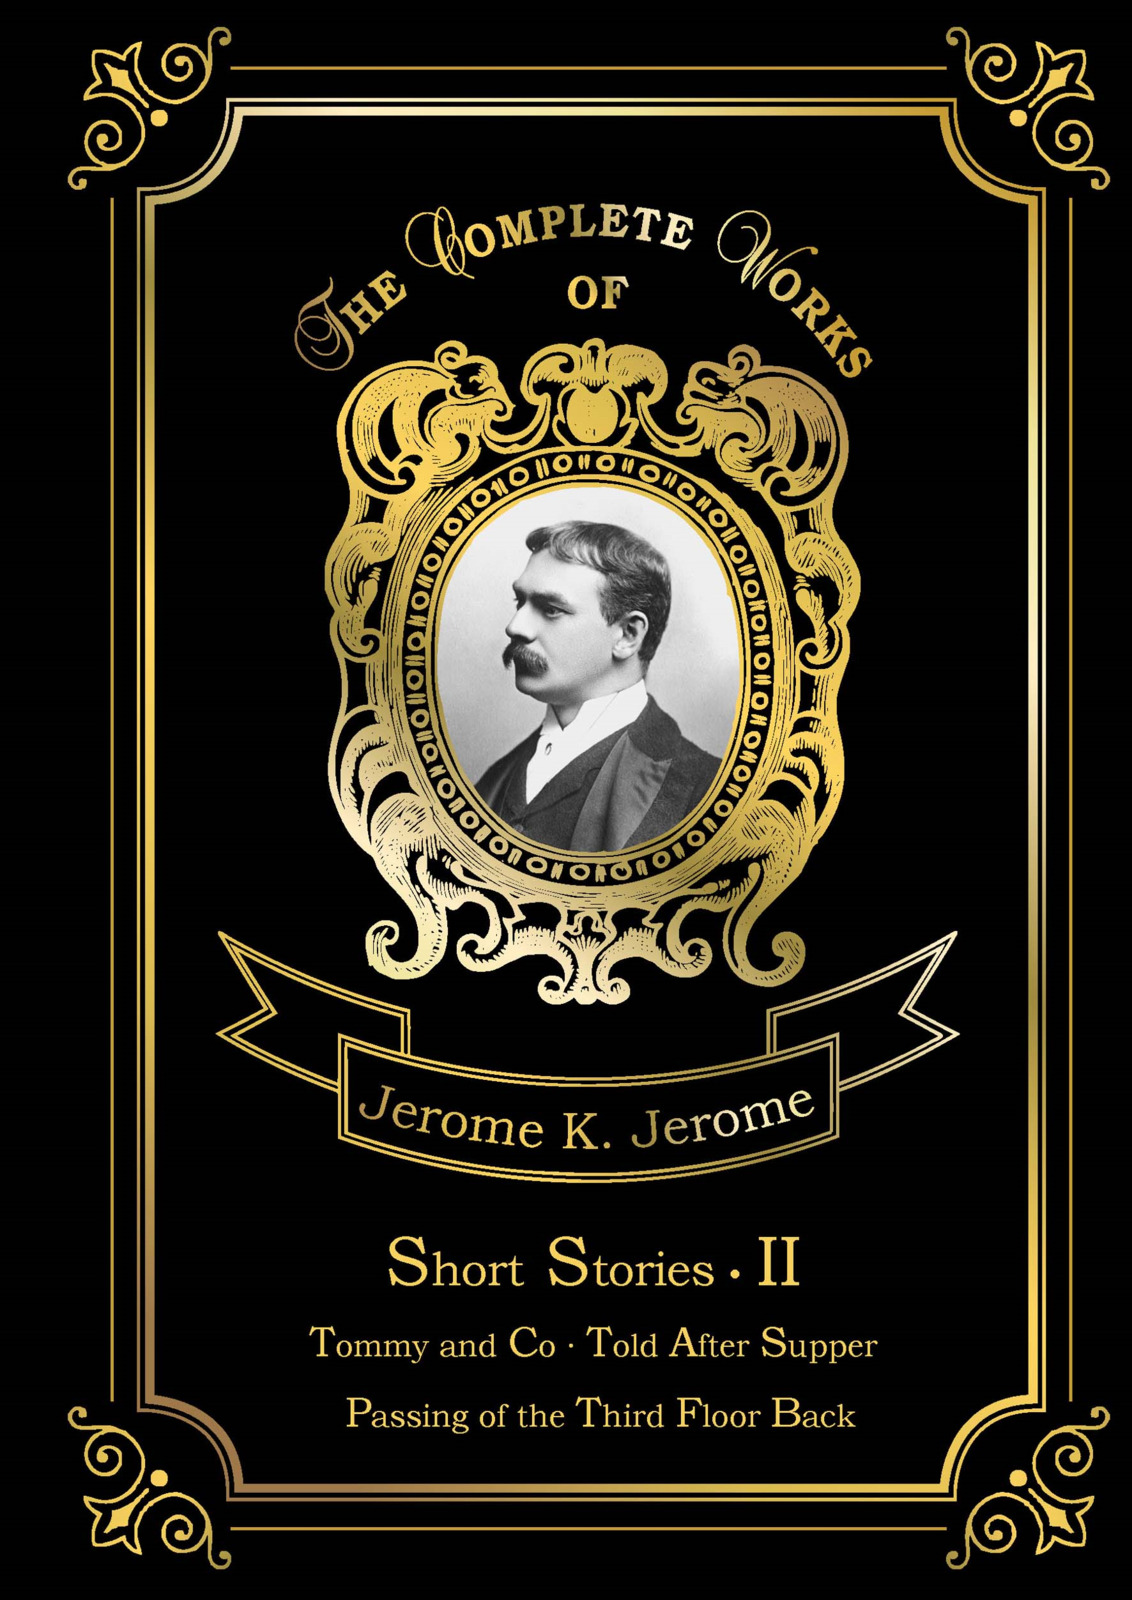 Jerome K. Jerome Short Stories II